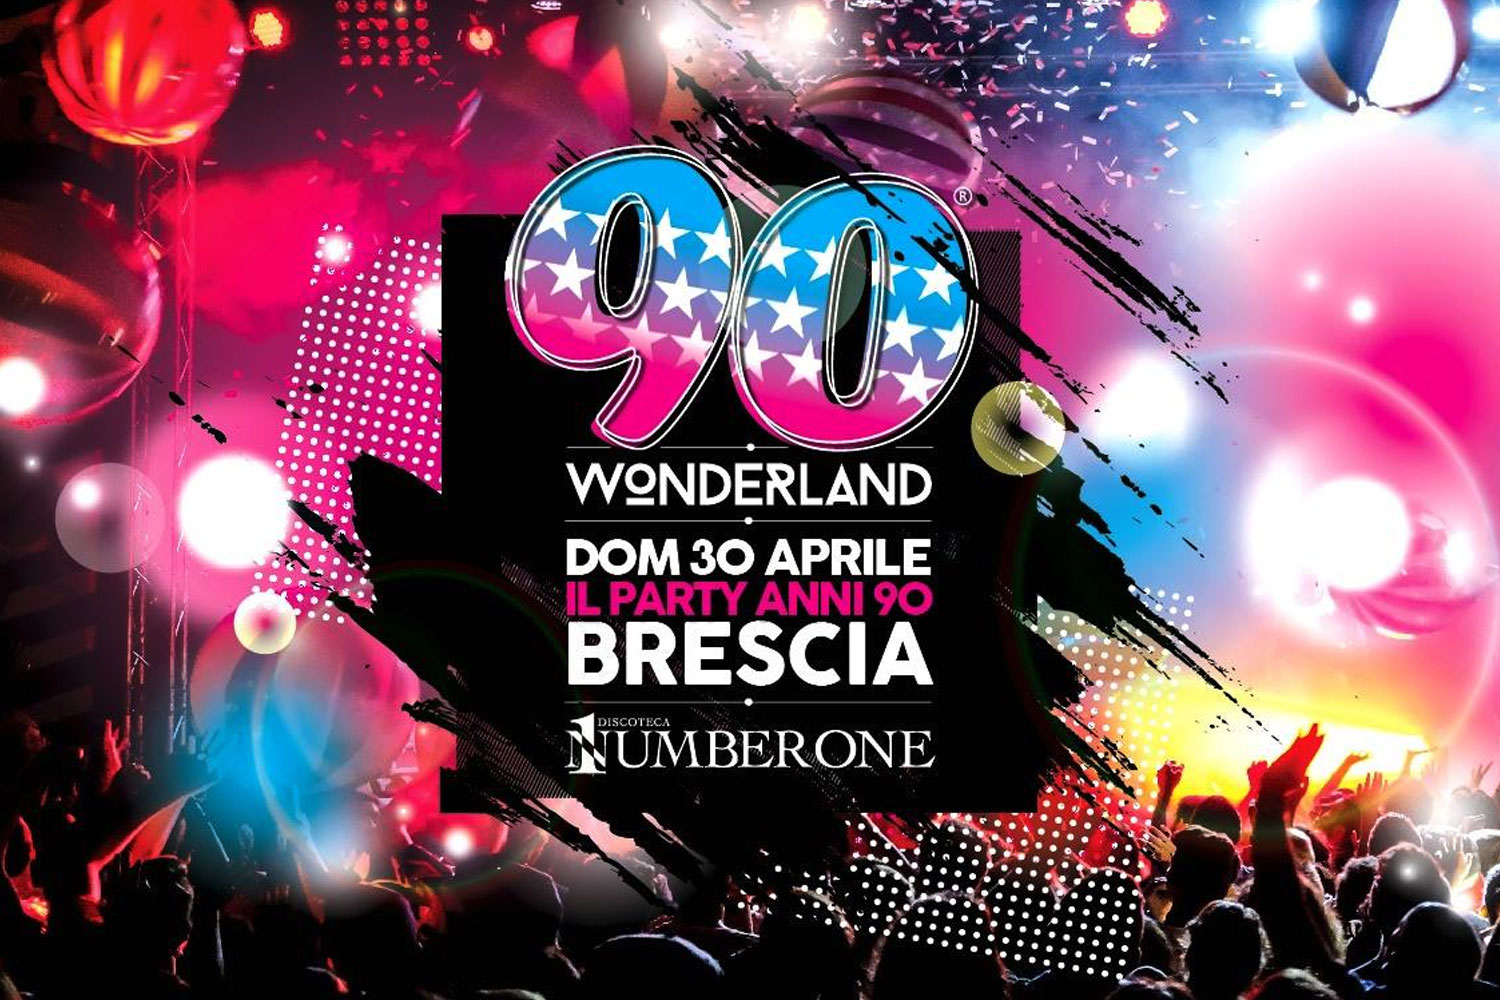 90 Wonderland Party anni '90